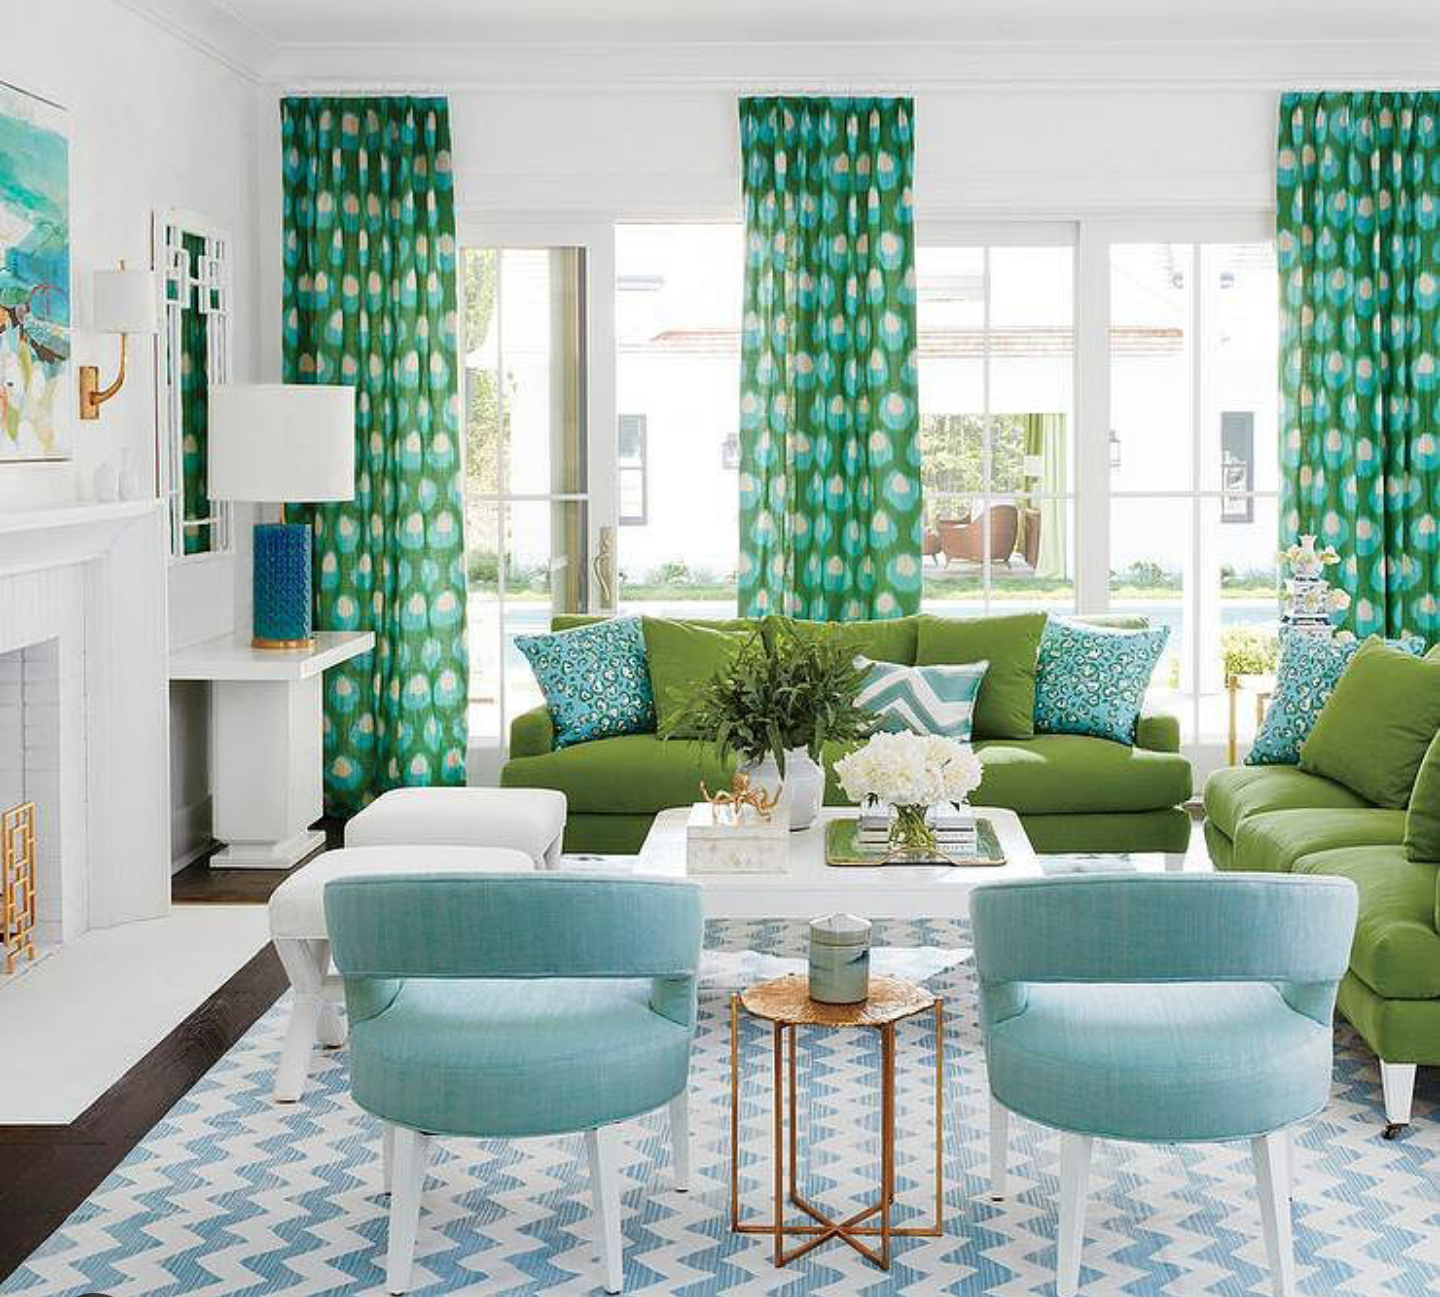 """There are so many ways that you can add color to a room without painting the walls. especially if you live in a rental. 1.) Go big! with colorful artwork. Large colorful artwork adds a pop of color and focal point to the room. Focal points are really important in the Interior design industry. It's the first thing that gets our attention when entering a room. 2.) Here's a chance to put your own personal style to a room by adding bold colorful Throw pillows or throw blankets. pair pillows in threes or just two flanking each side of the sofa. 3.) Invest in a colorful sofa or reupholster your existing sofa for a fresh colorful new look. 4.) Fill your home with plants. Adding plants or flowers around your home can bring interest and color to your home. """"Tip"""" plants are a great way to hide any cord running along the floors. 5.) Try incorporating bold and colorful drapery for vertical interest. by placing the drapery rod higher towards the ceiling, it makes the ceiling feel higher than they actually are."""